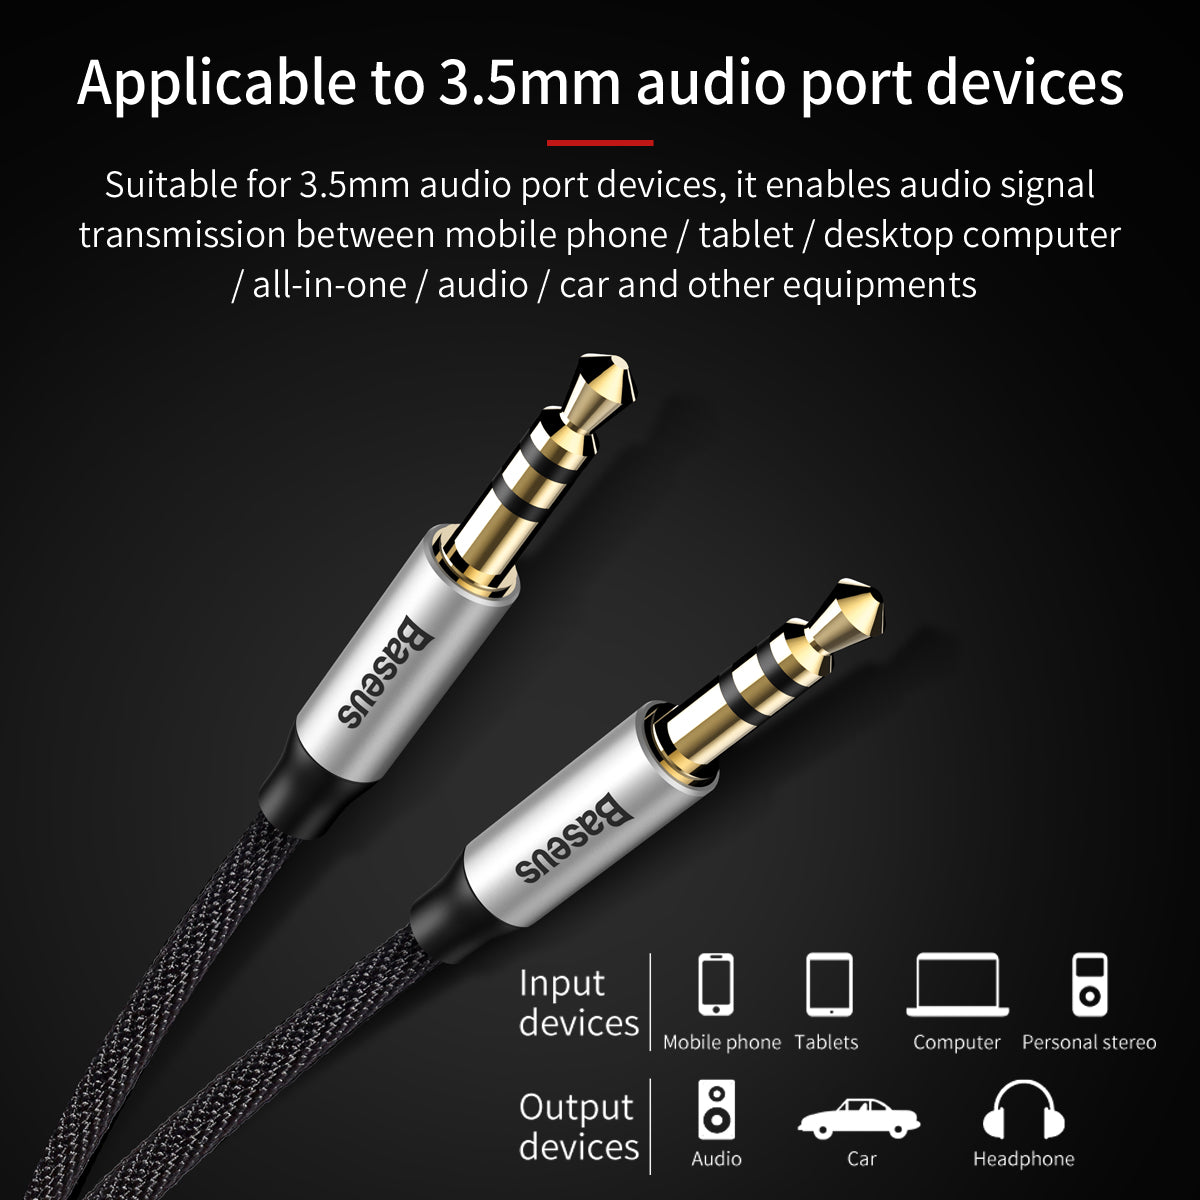 Baseus_Yiven_audio_cable_range_of_suitable_devices_SA9Y6UFOZZK4.jpg